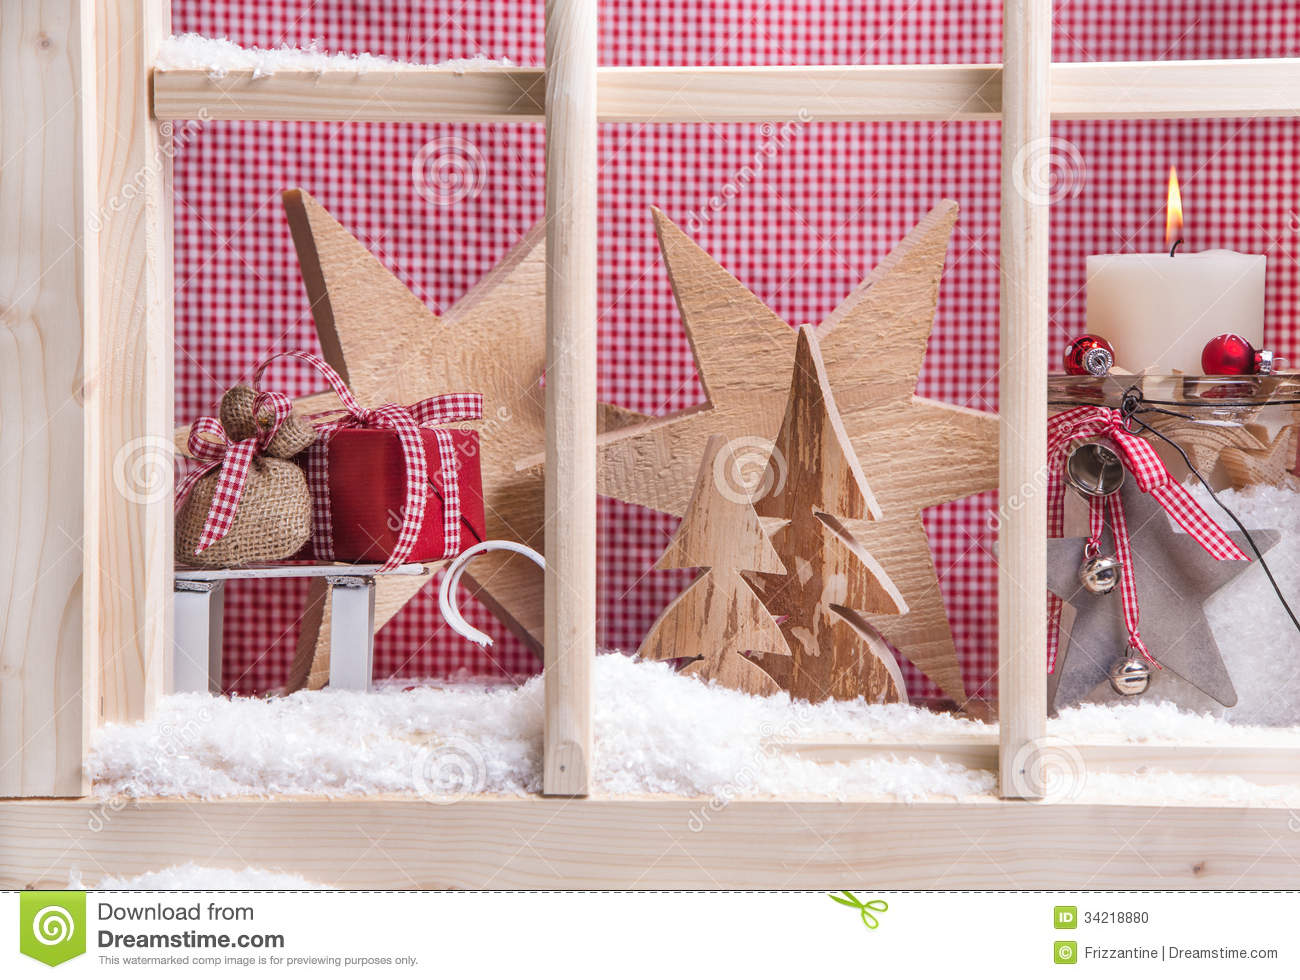 Indoor window sill christmas decoration gifts snow for Indoor window christmas decorations